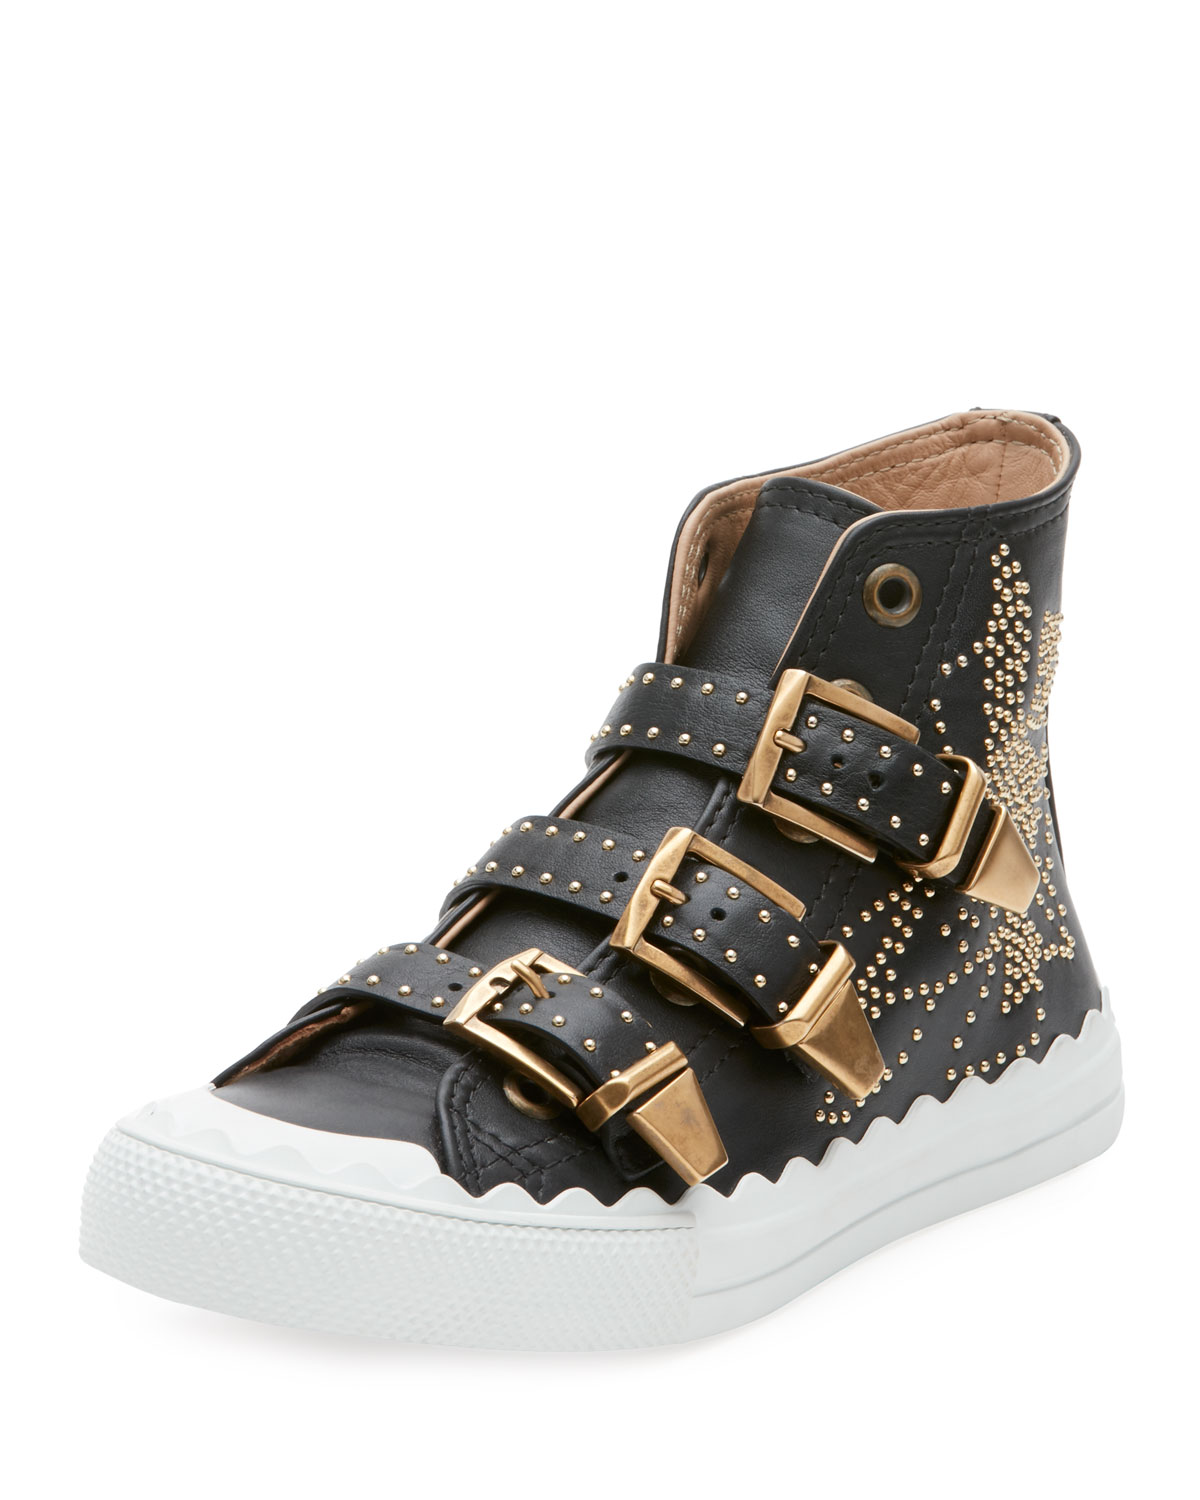 Chloe Kyle Studded High Top Leather Sneakers Neiman Marcus